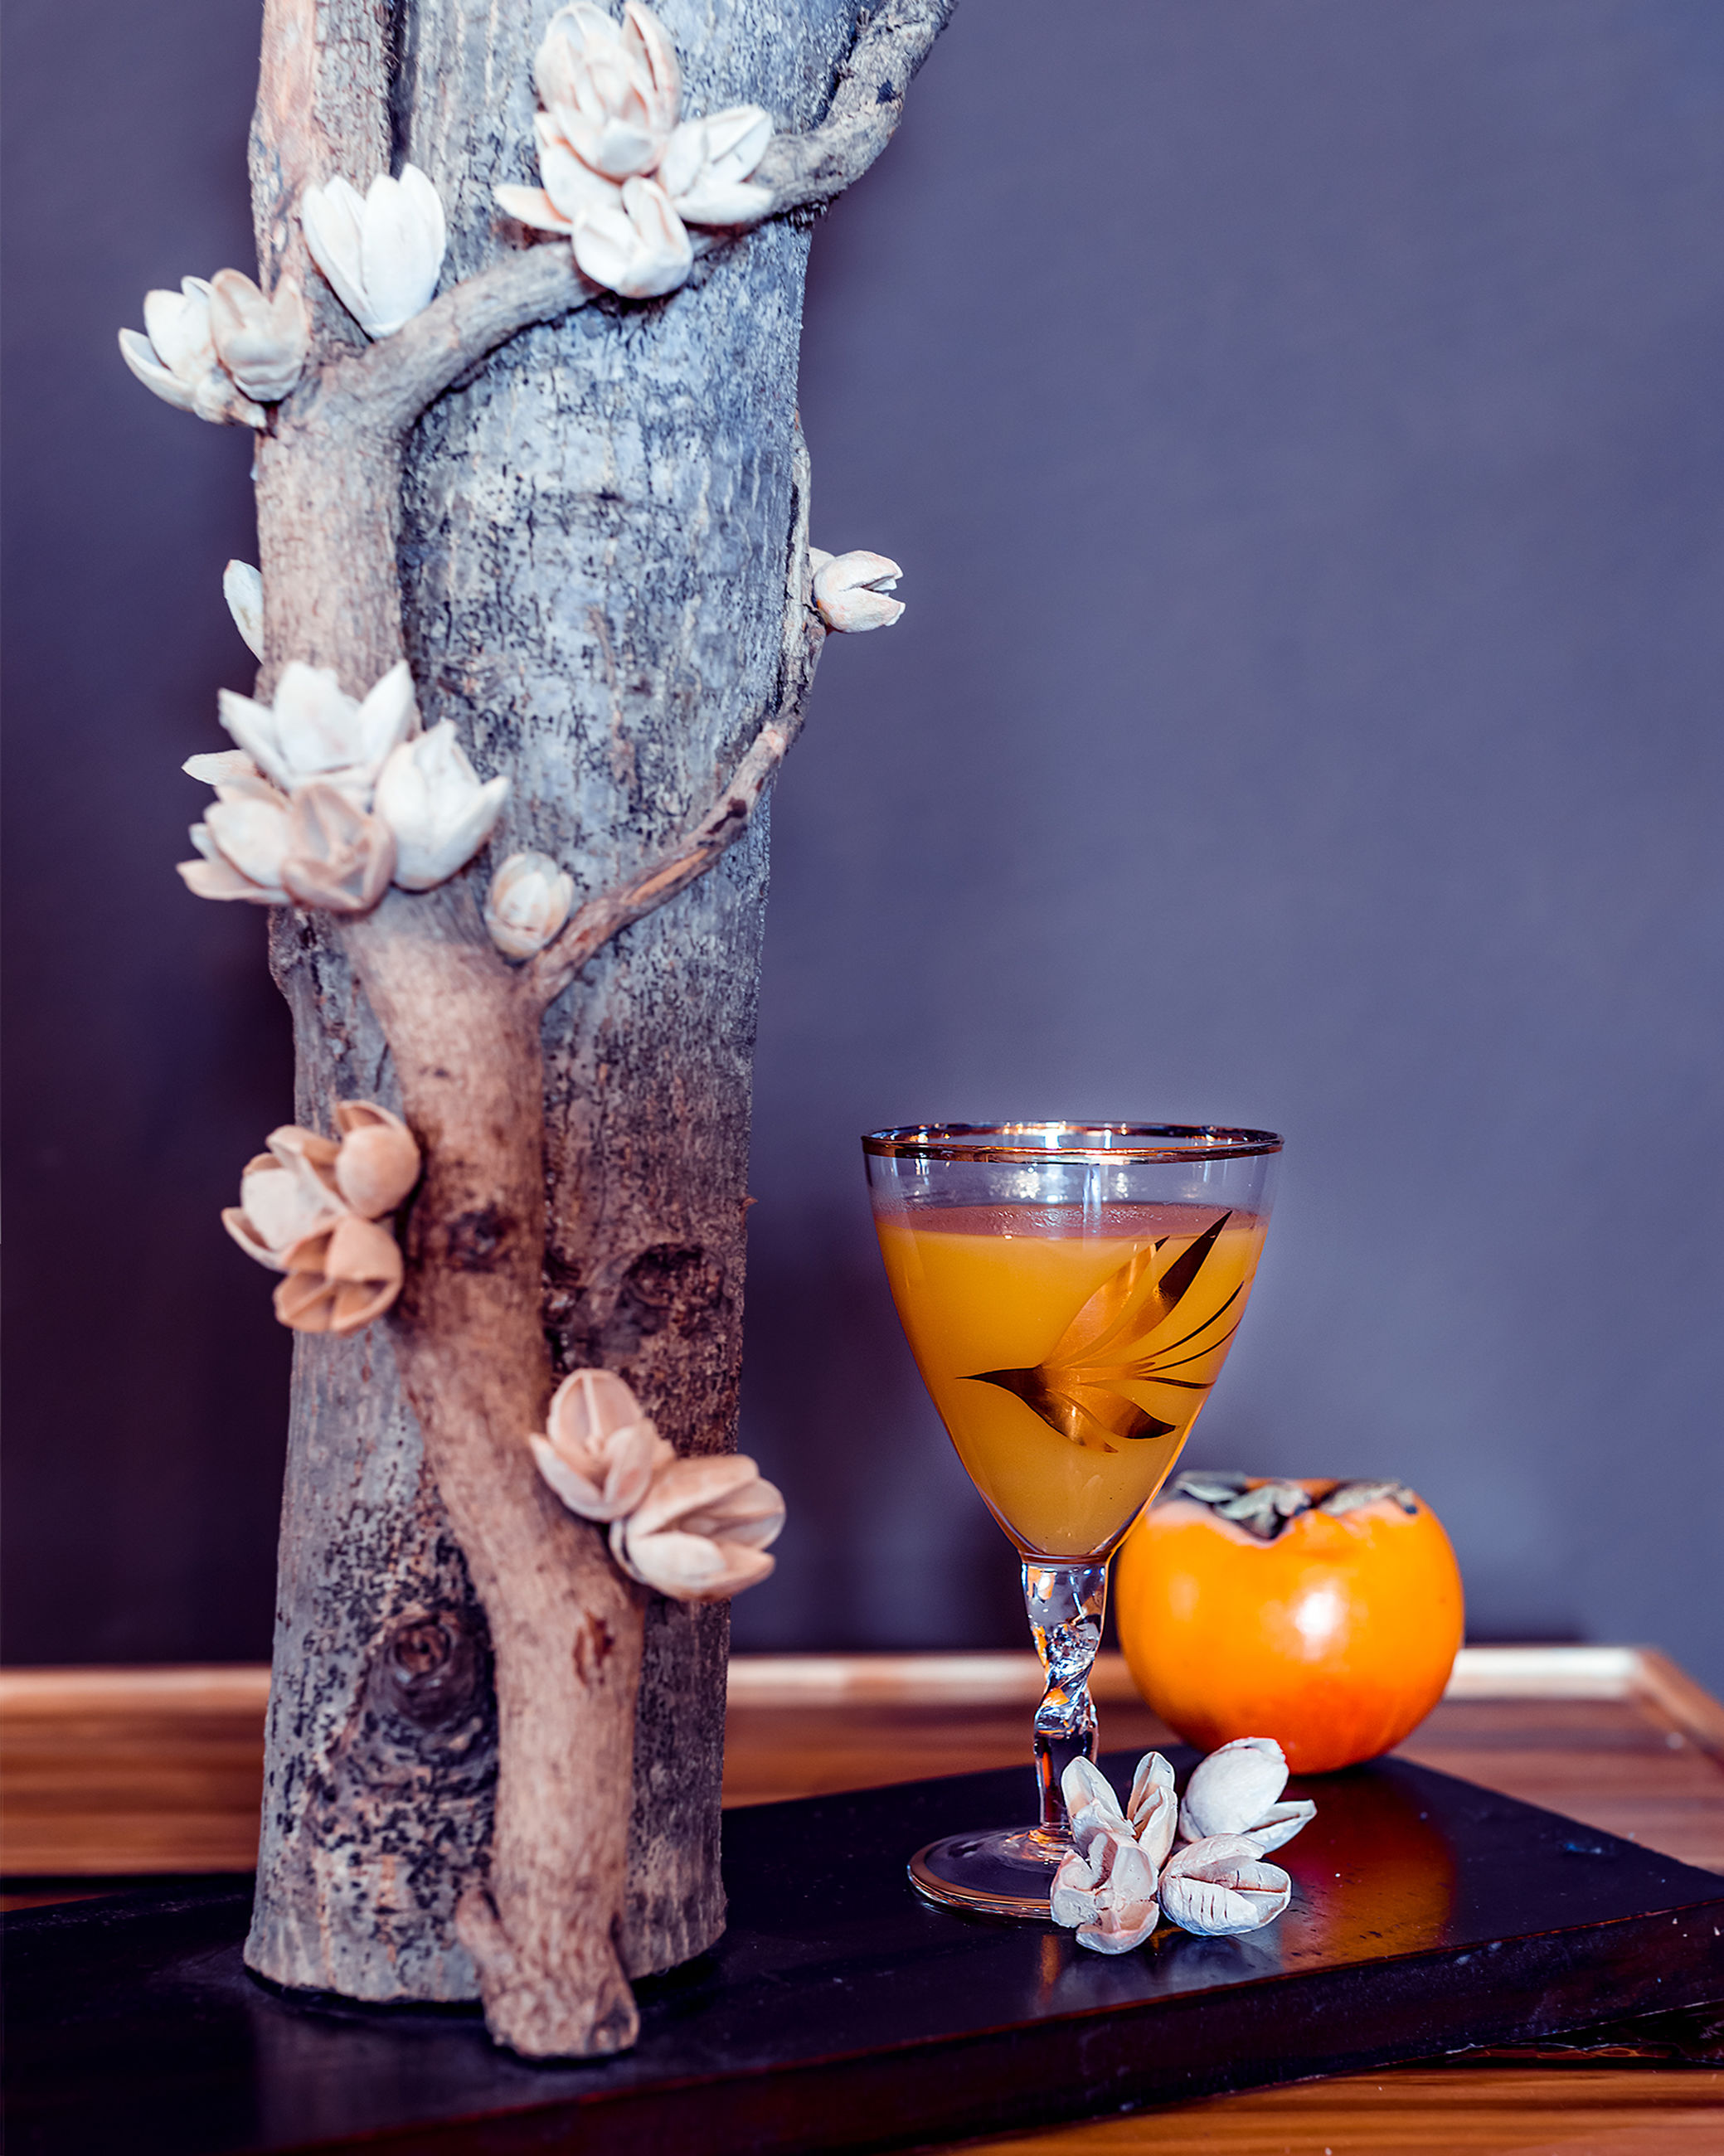 Close-up of food and drink by decoration on table